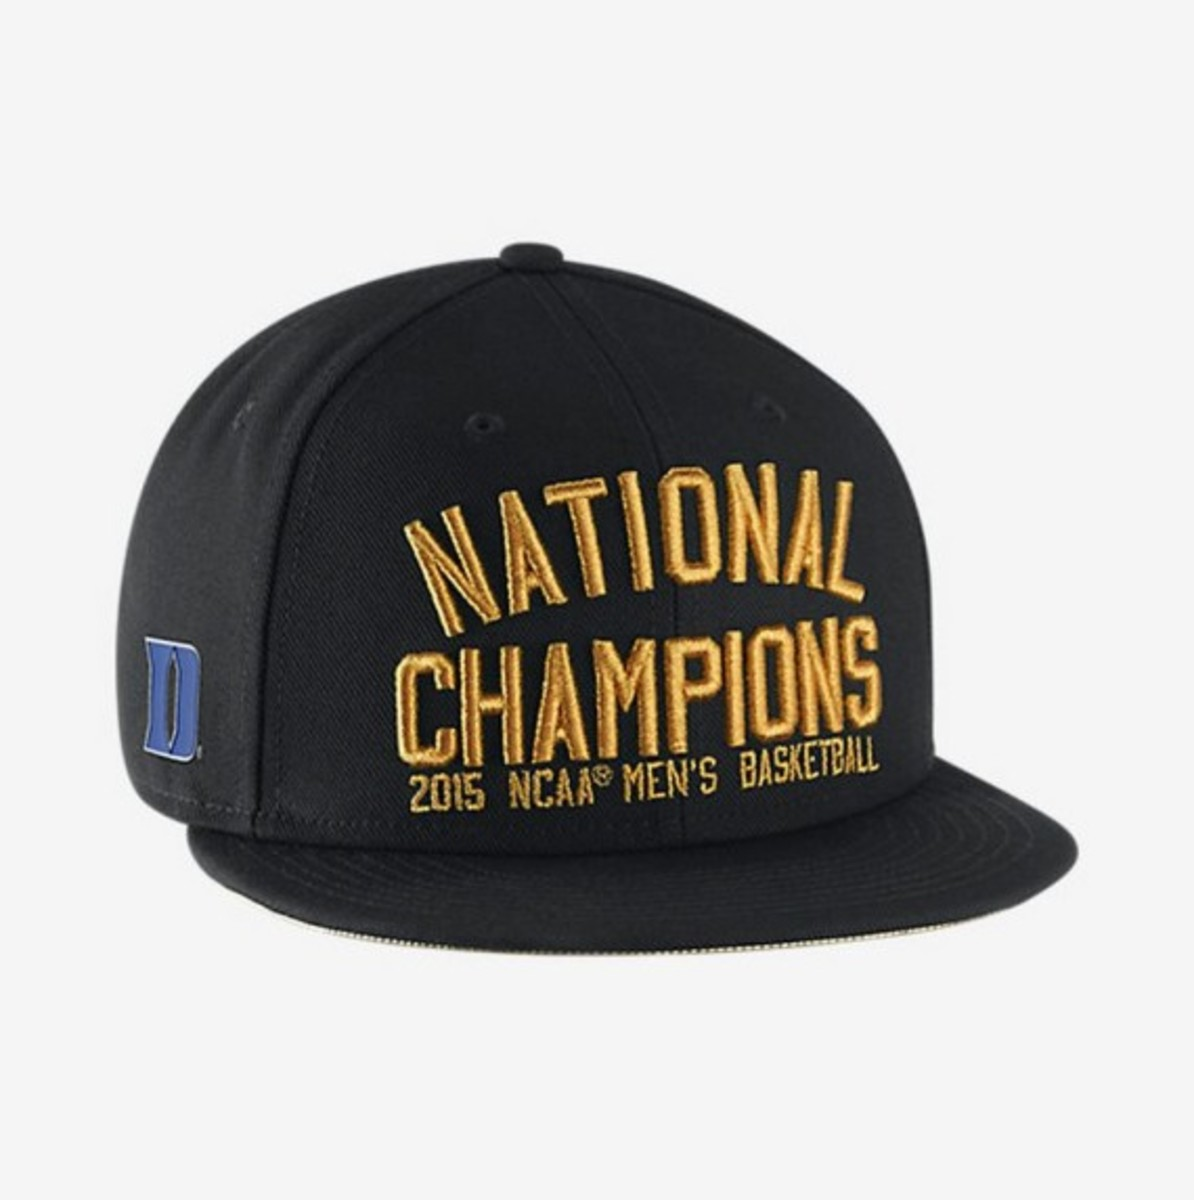 Nike Celebrates Duke's Fifth National Championship with Limited Edition Apparel - 2